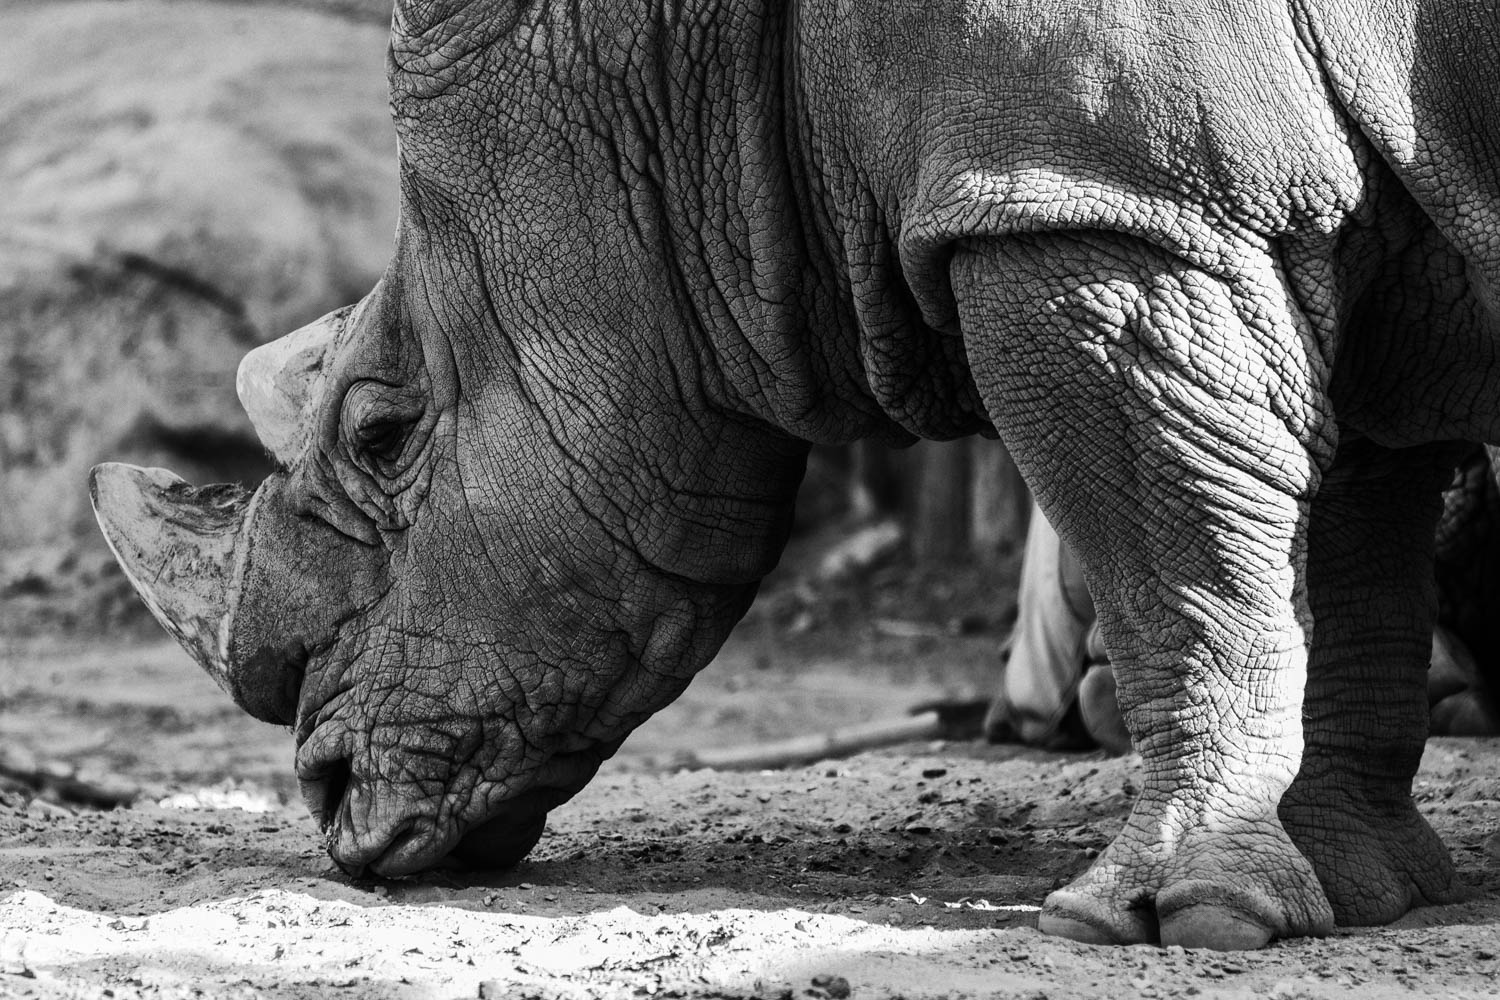 Rhino in black and white